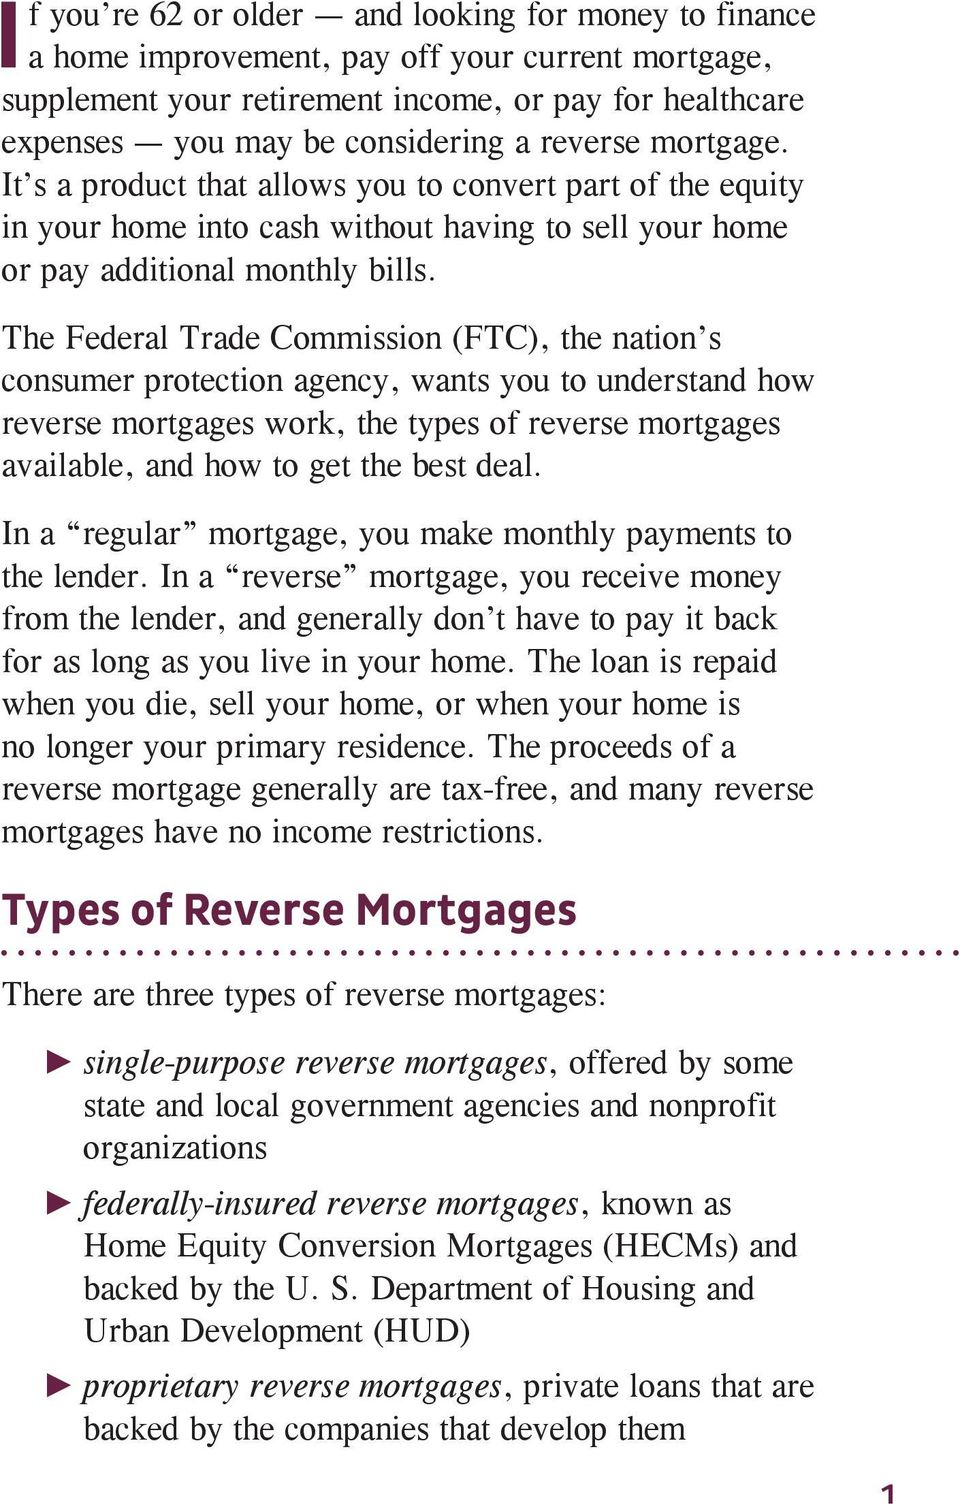 The Federal Trade Commission (FTC), the nation s consumer protection agency, wants you to understand how reverse mortgages work, the types of reverse mortgages available, and how to get the best deal.